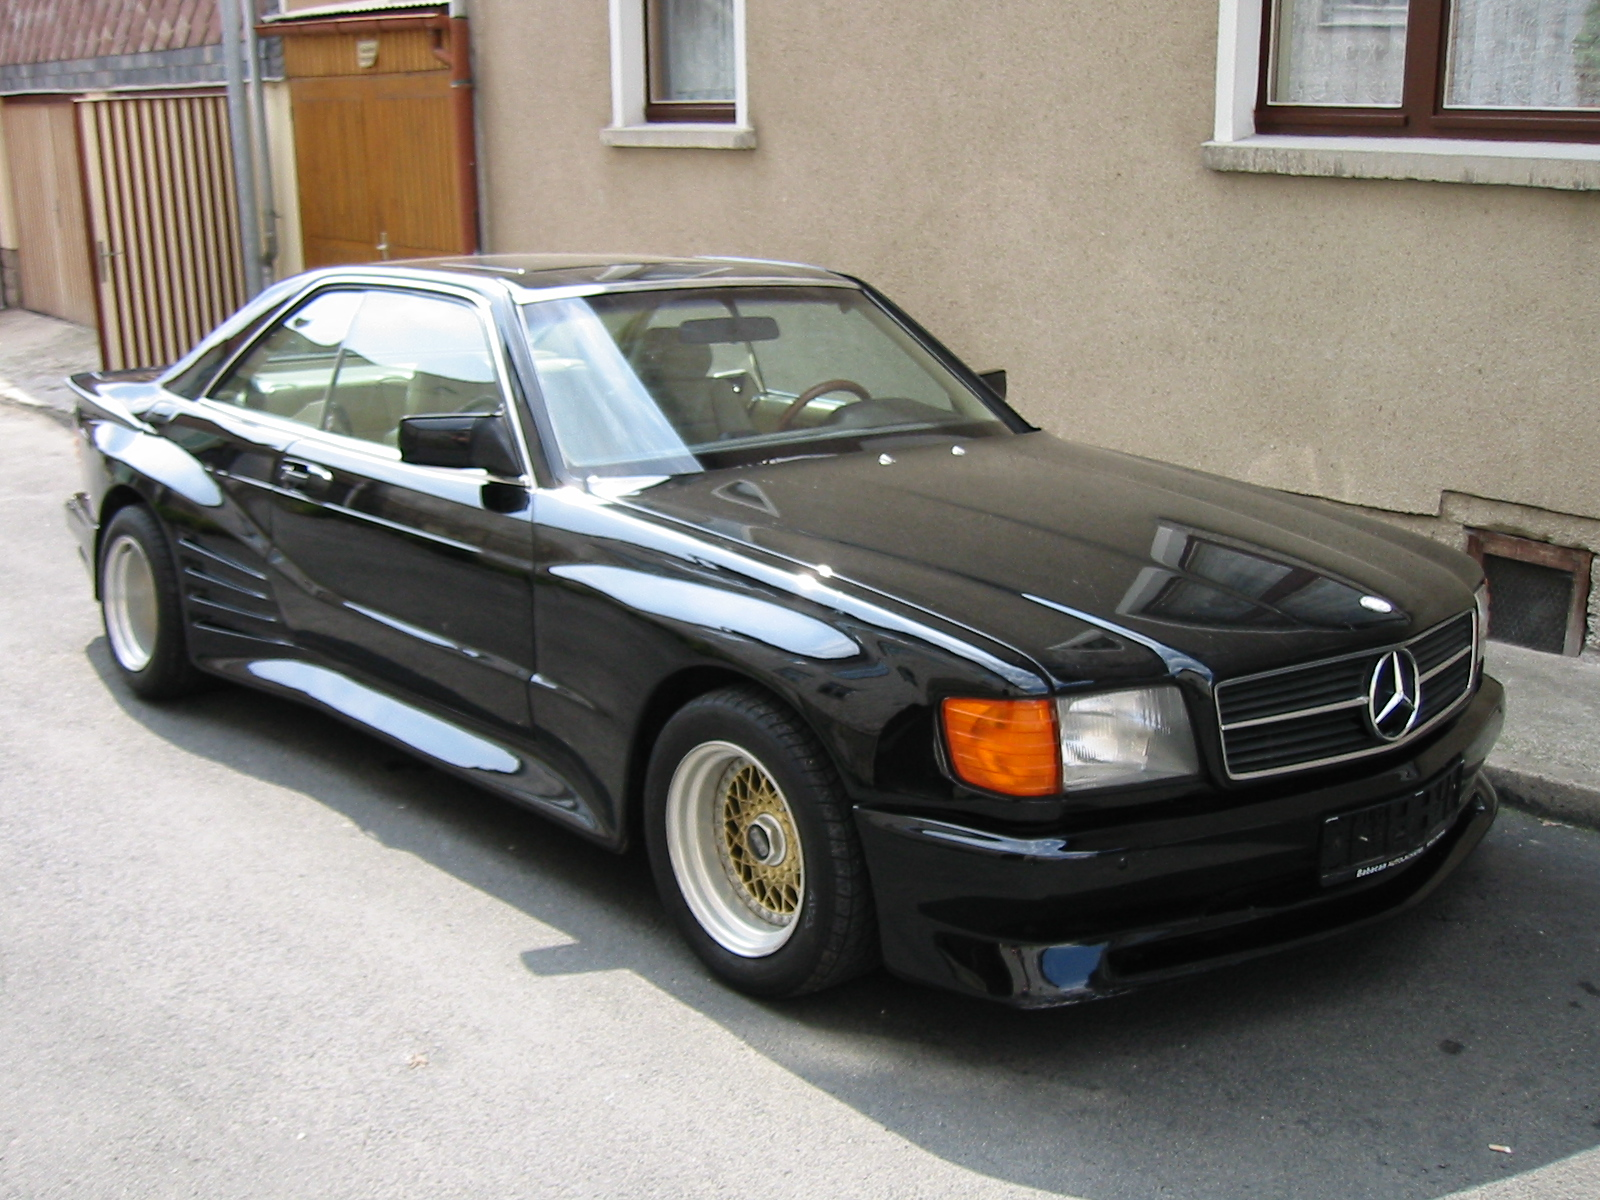 The unofficial w126 coupe sec picture thread page 44 for Mercedes benz forum